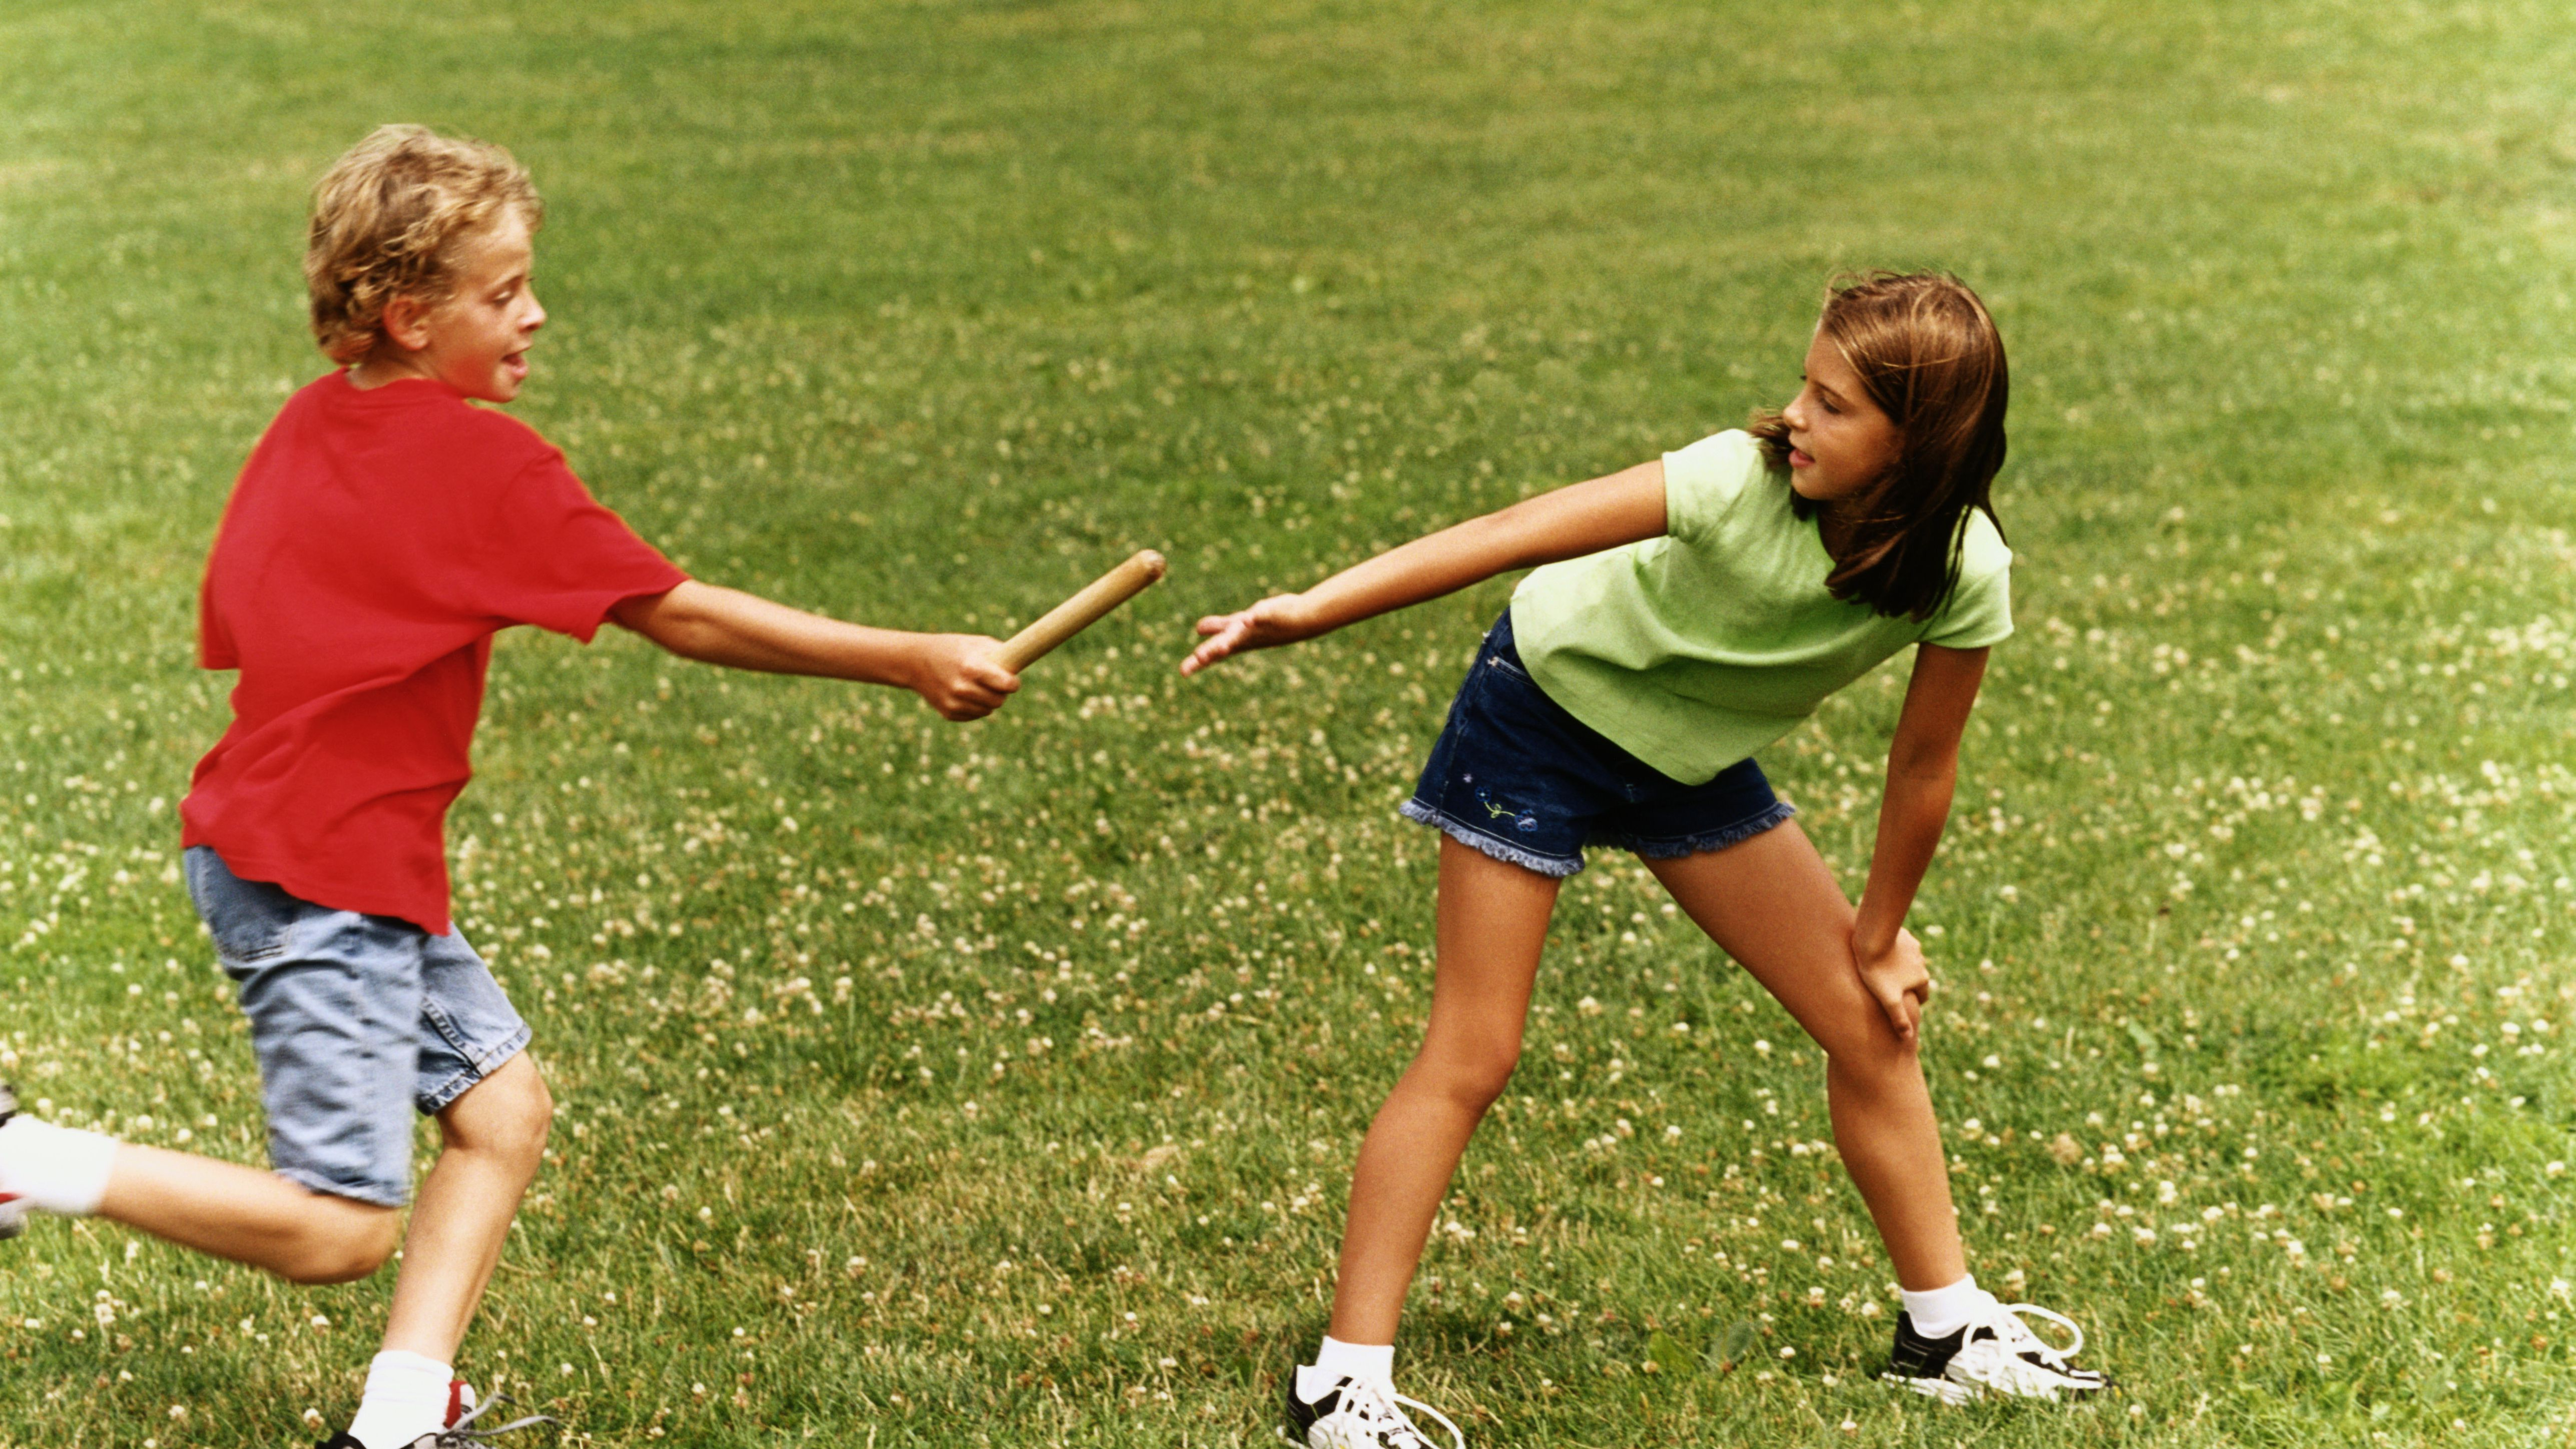 Running Games for Kids to Encourage Exercise